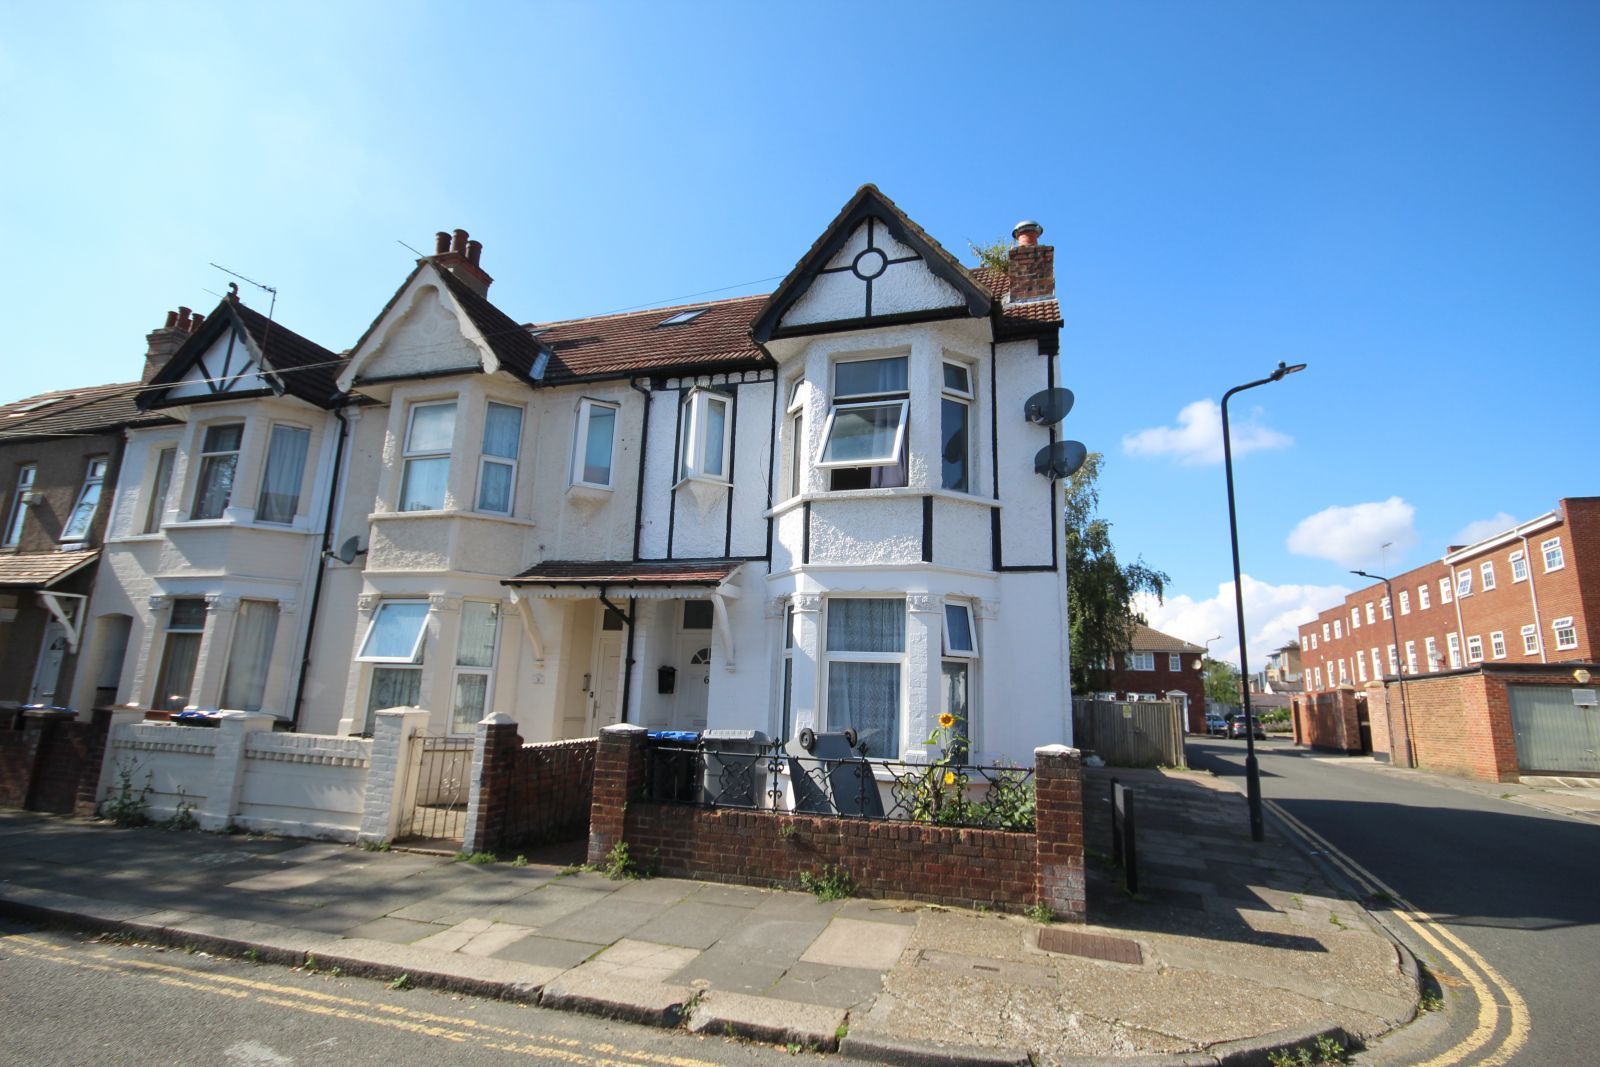 Property photo 1 of 10. Priory Avenue, Wembley, Middlesex Ha0